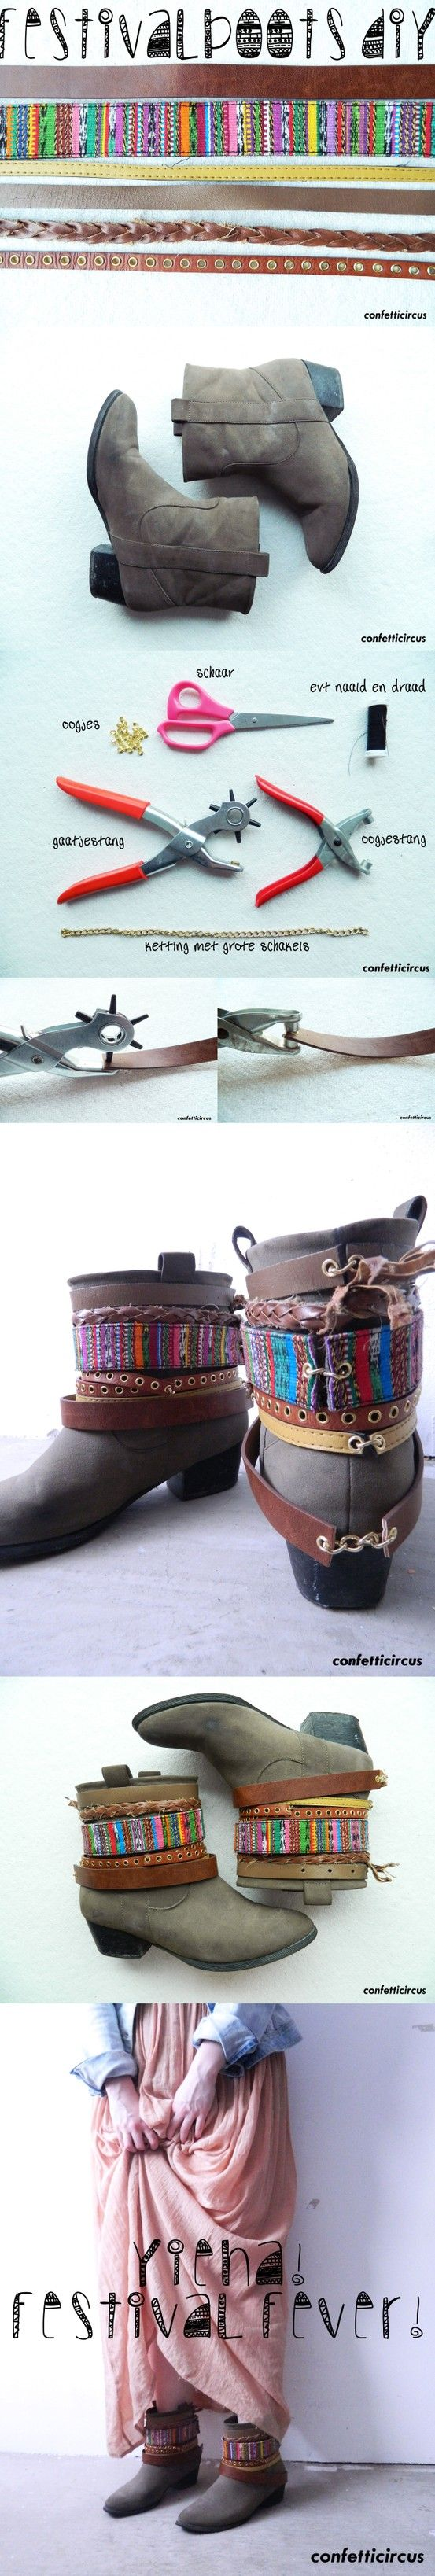 old, ugly thrift store boots = awesome DIY gypsy-boho/hippie style boots